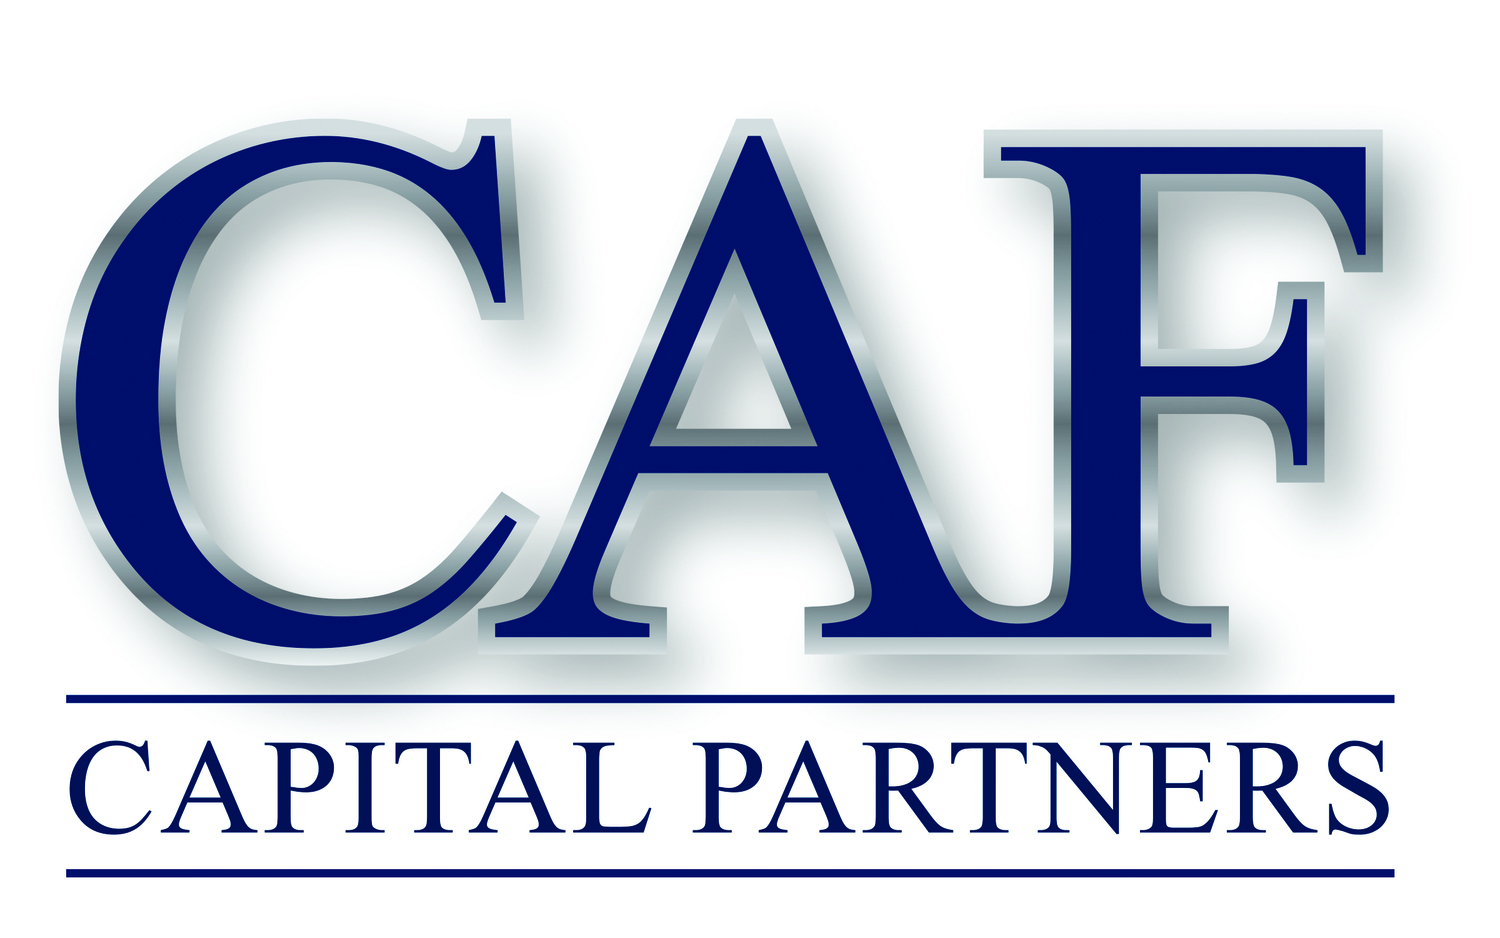 CAF Capital Partners